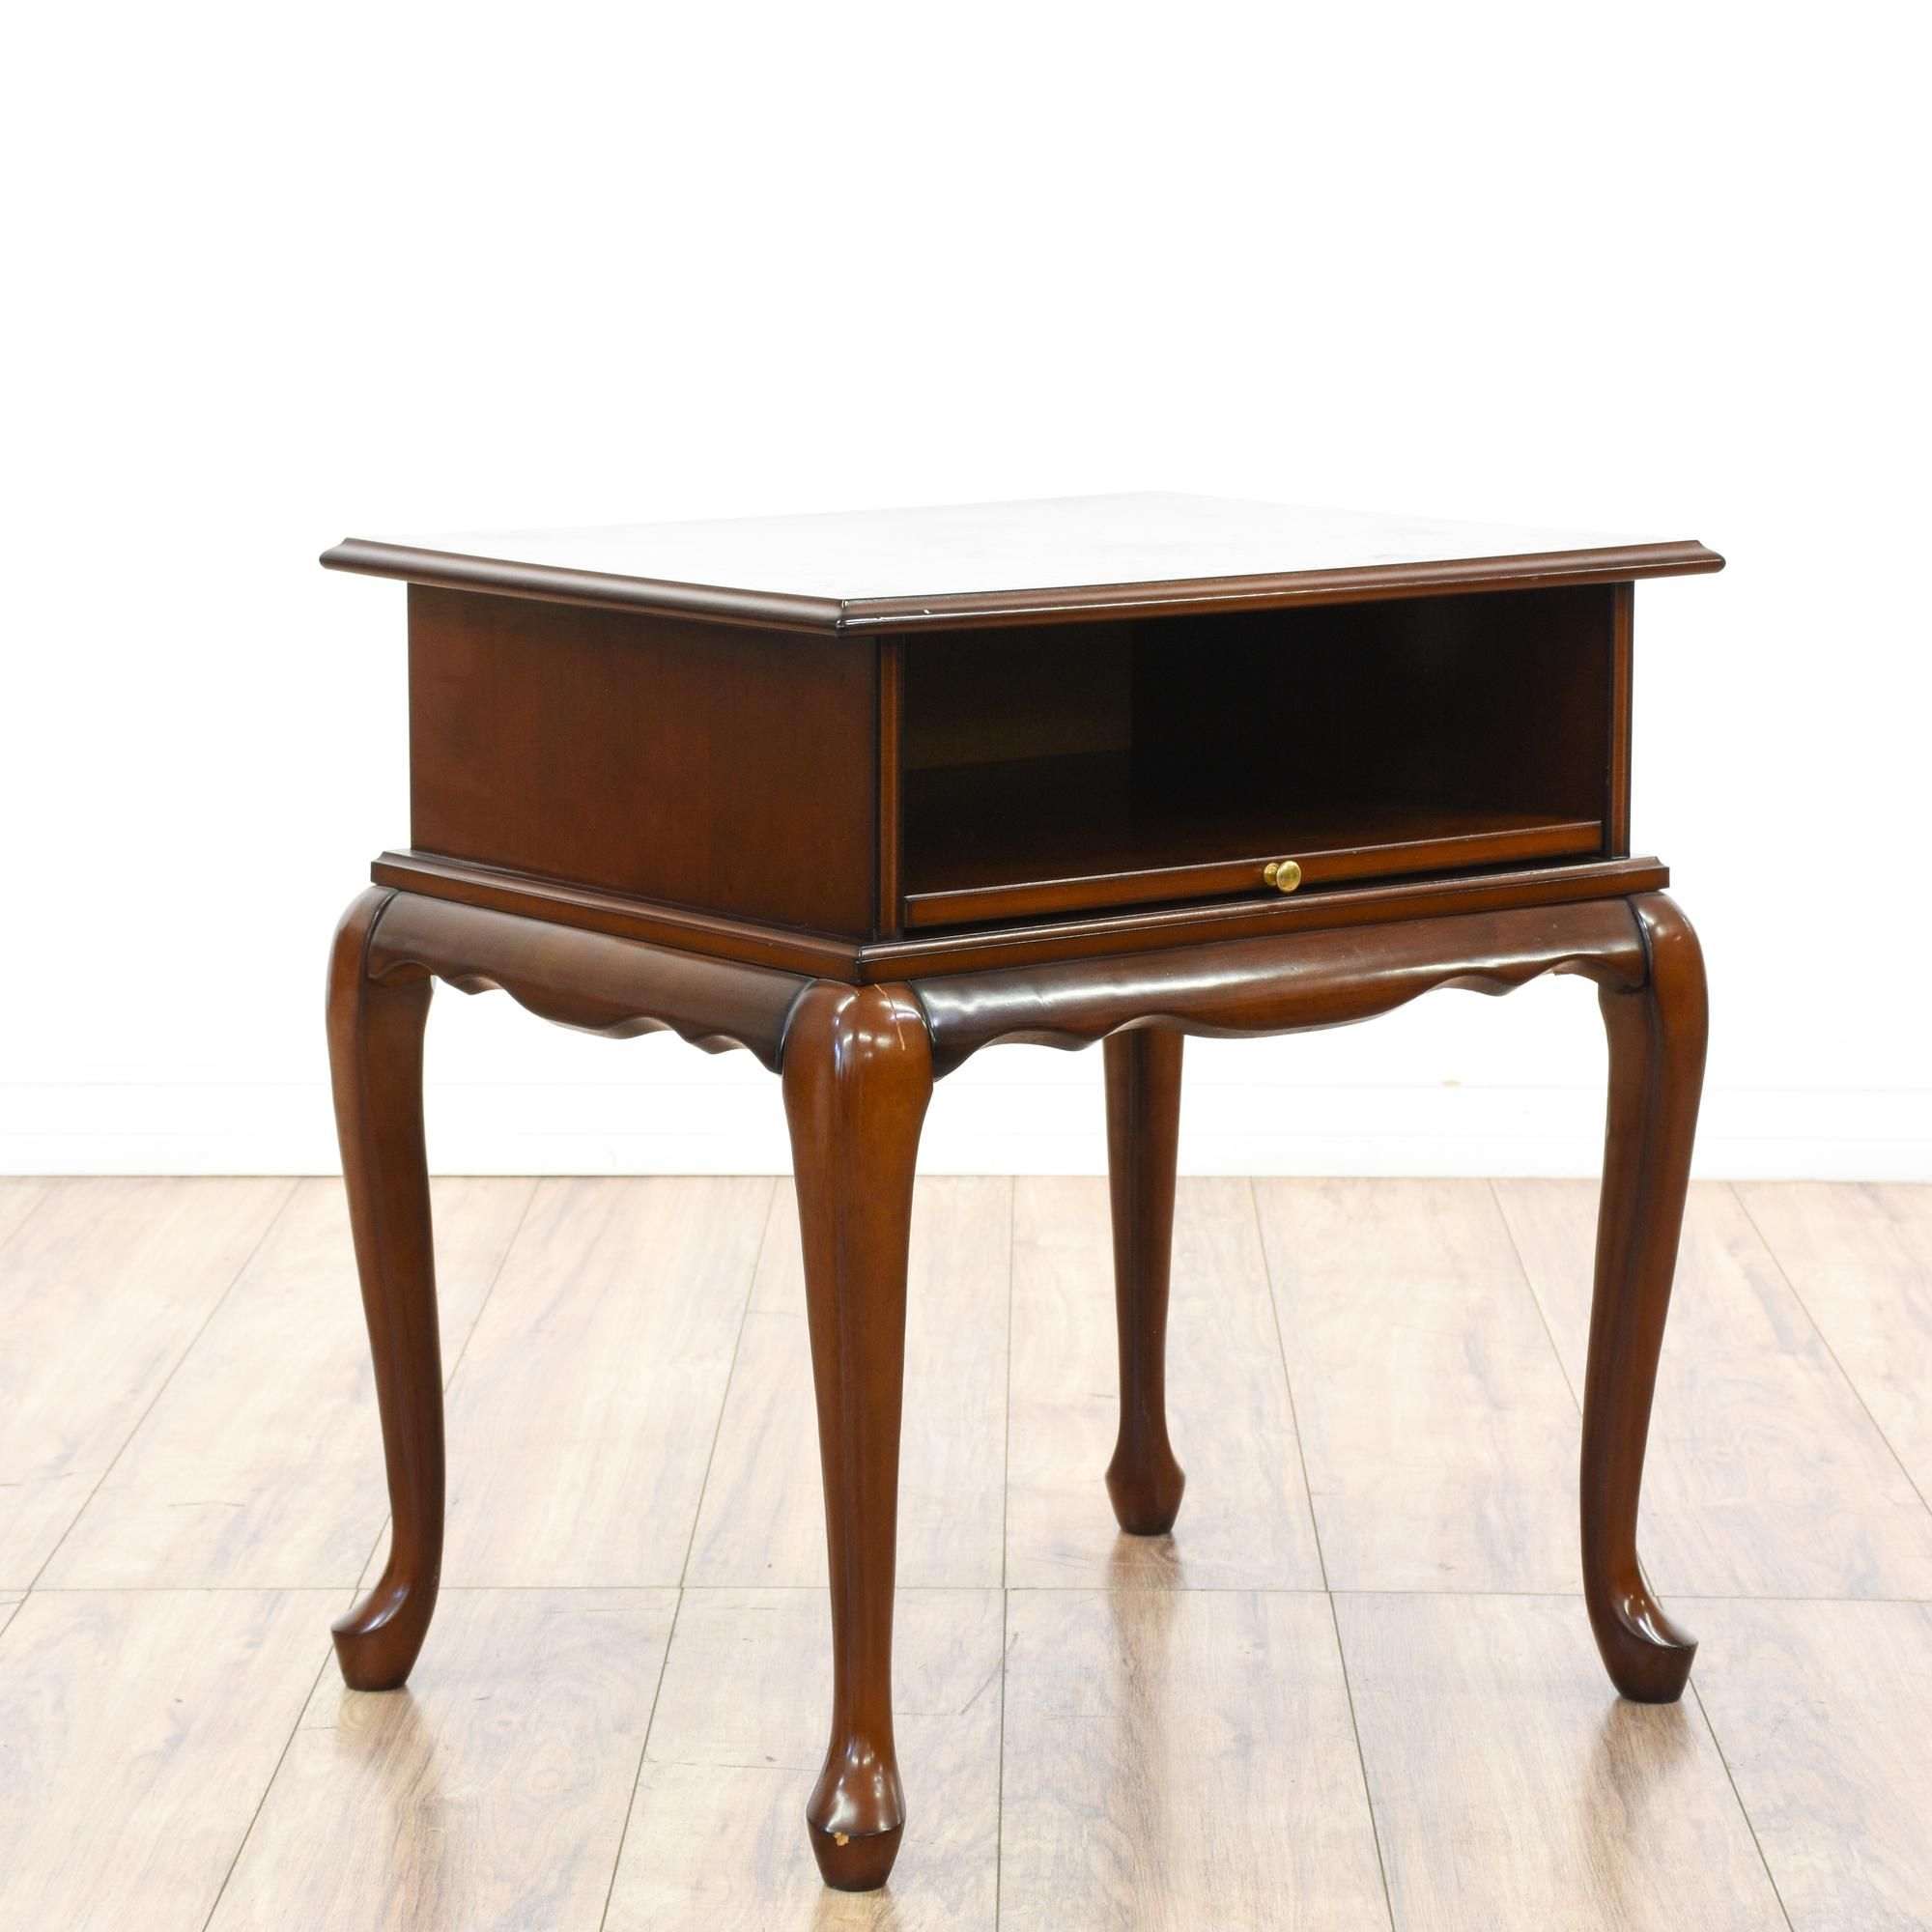 This Queen Anne Style Side Table Is Featured In A Solid Wood With A Glossy  Dark